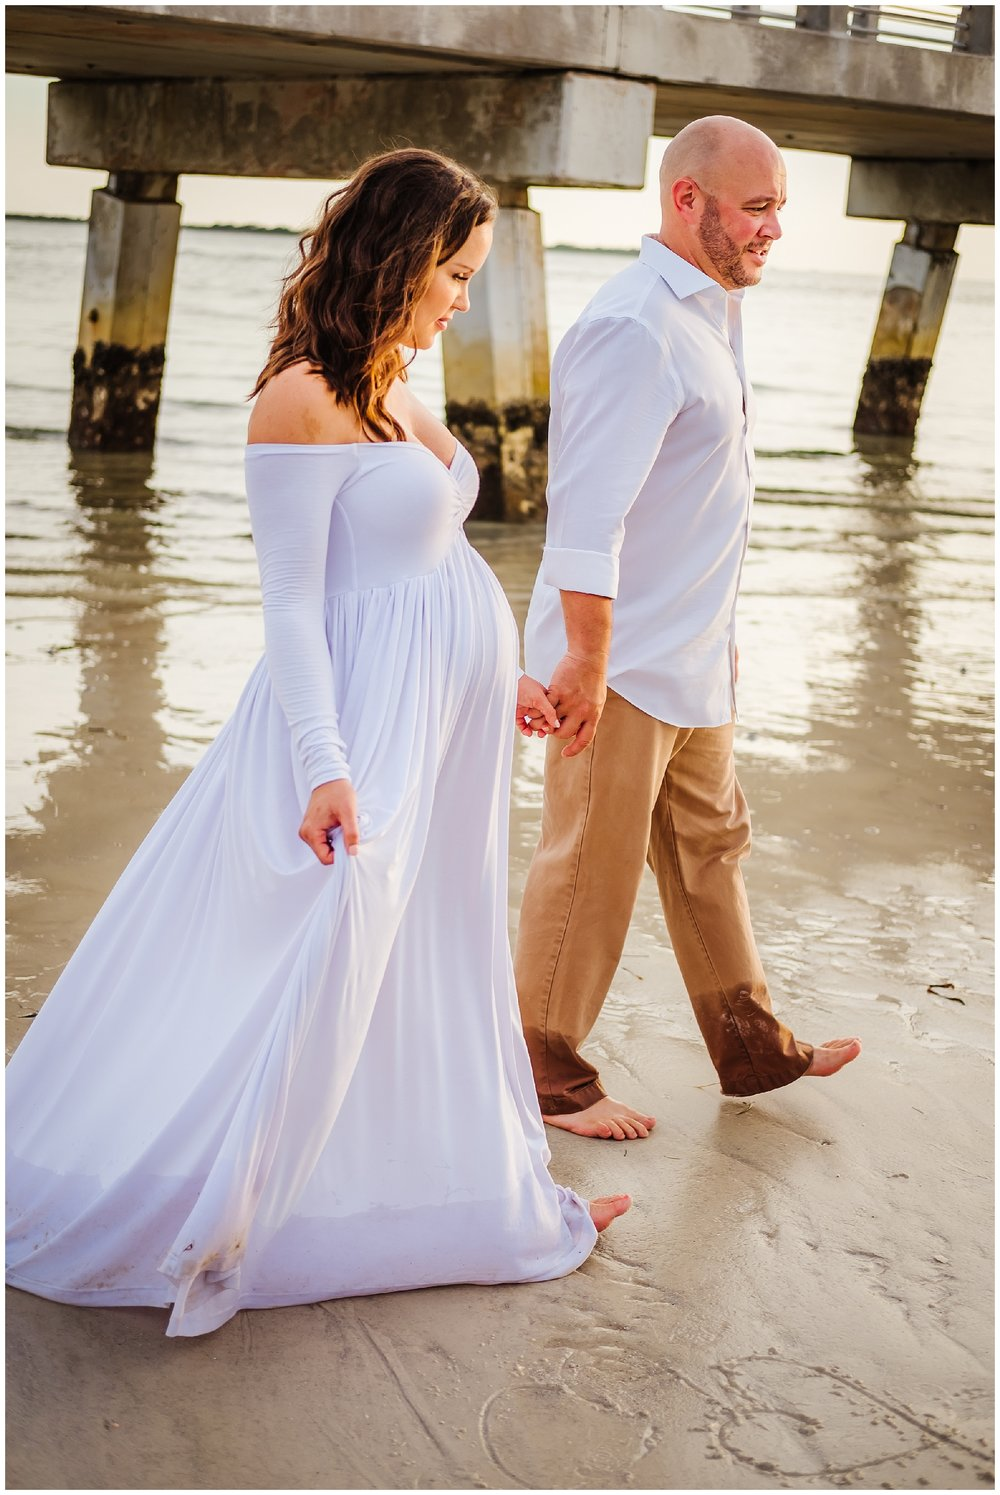 fort-desoto-maternity-photos-florida-beach-sunset_0027.jpg